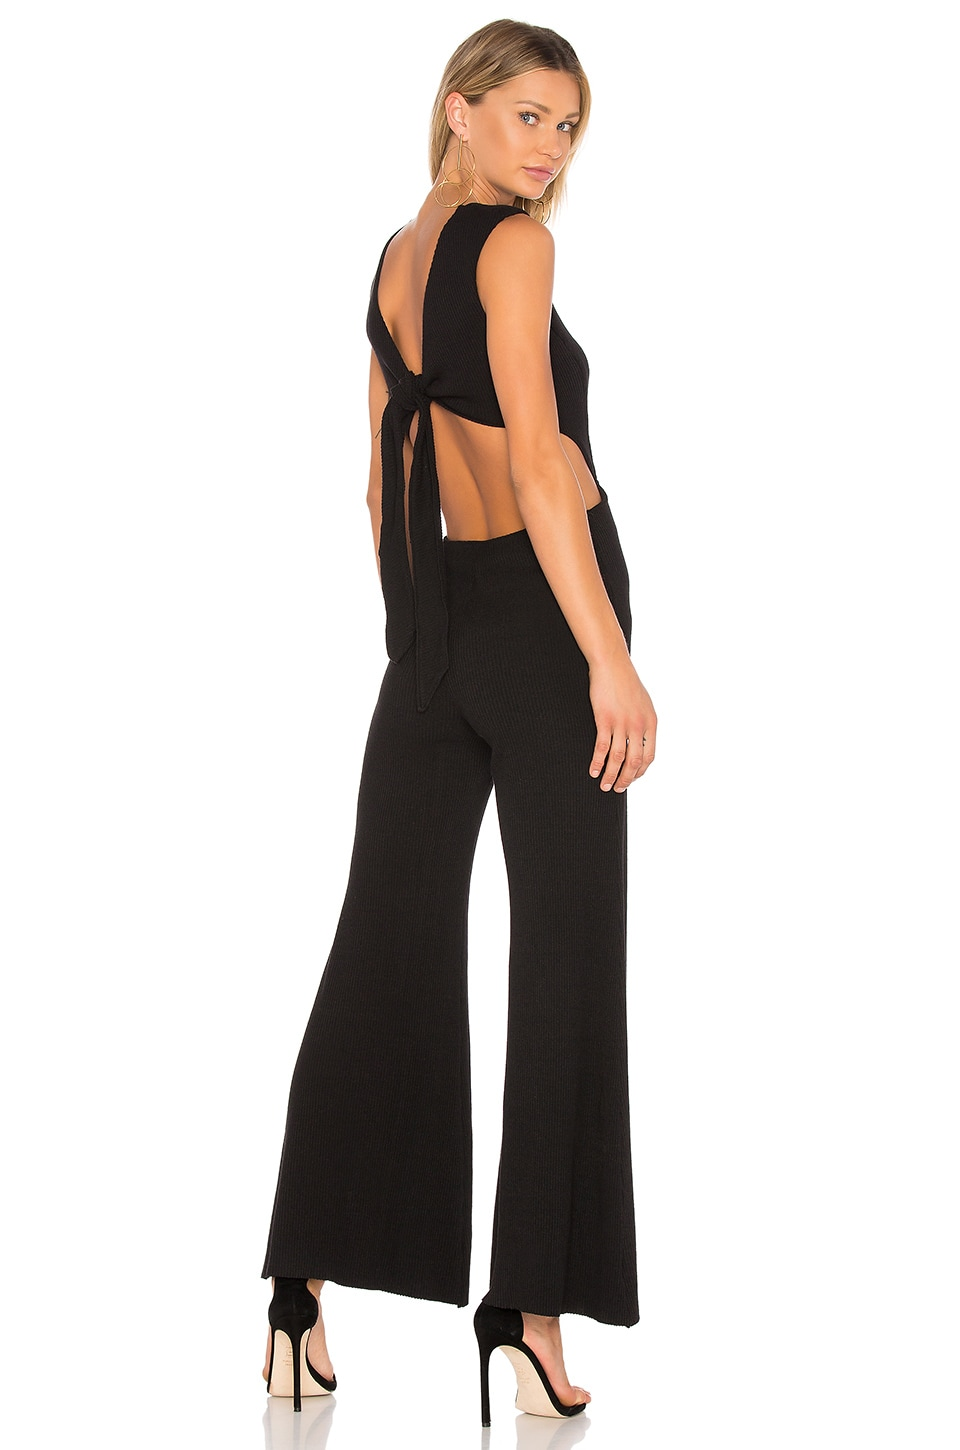 Rib Wrap Tie Jumpsuit by Enza Costa